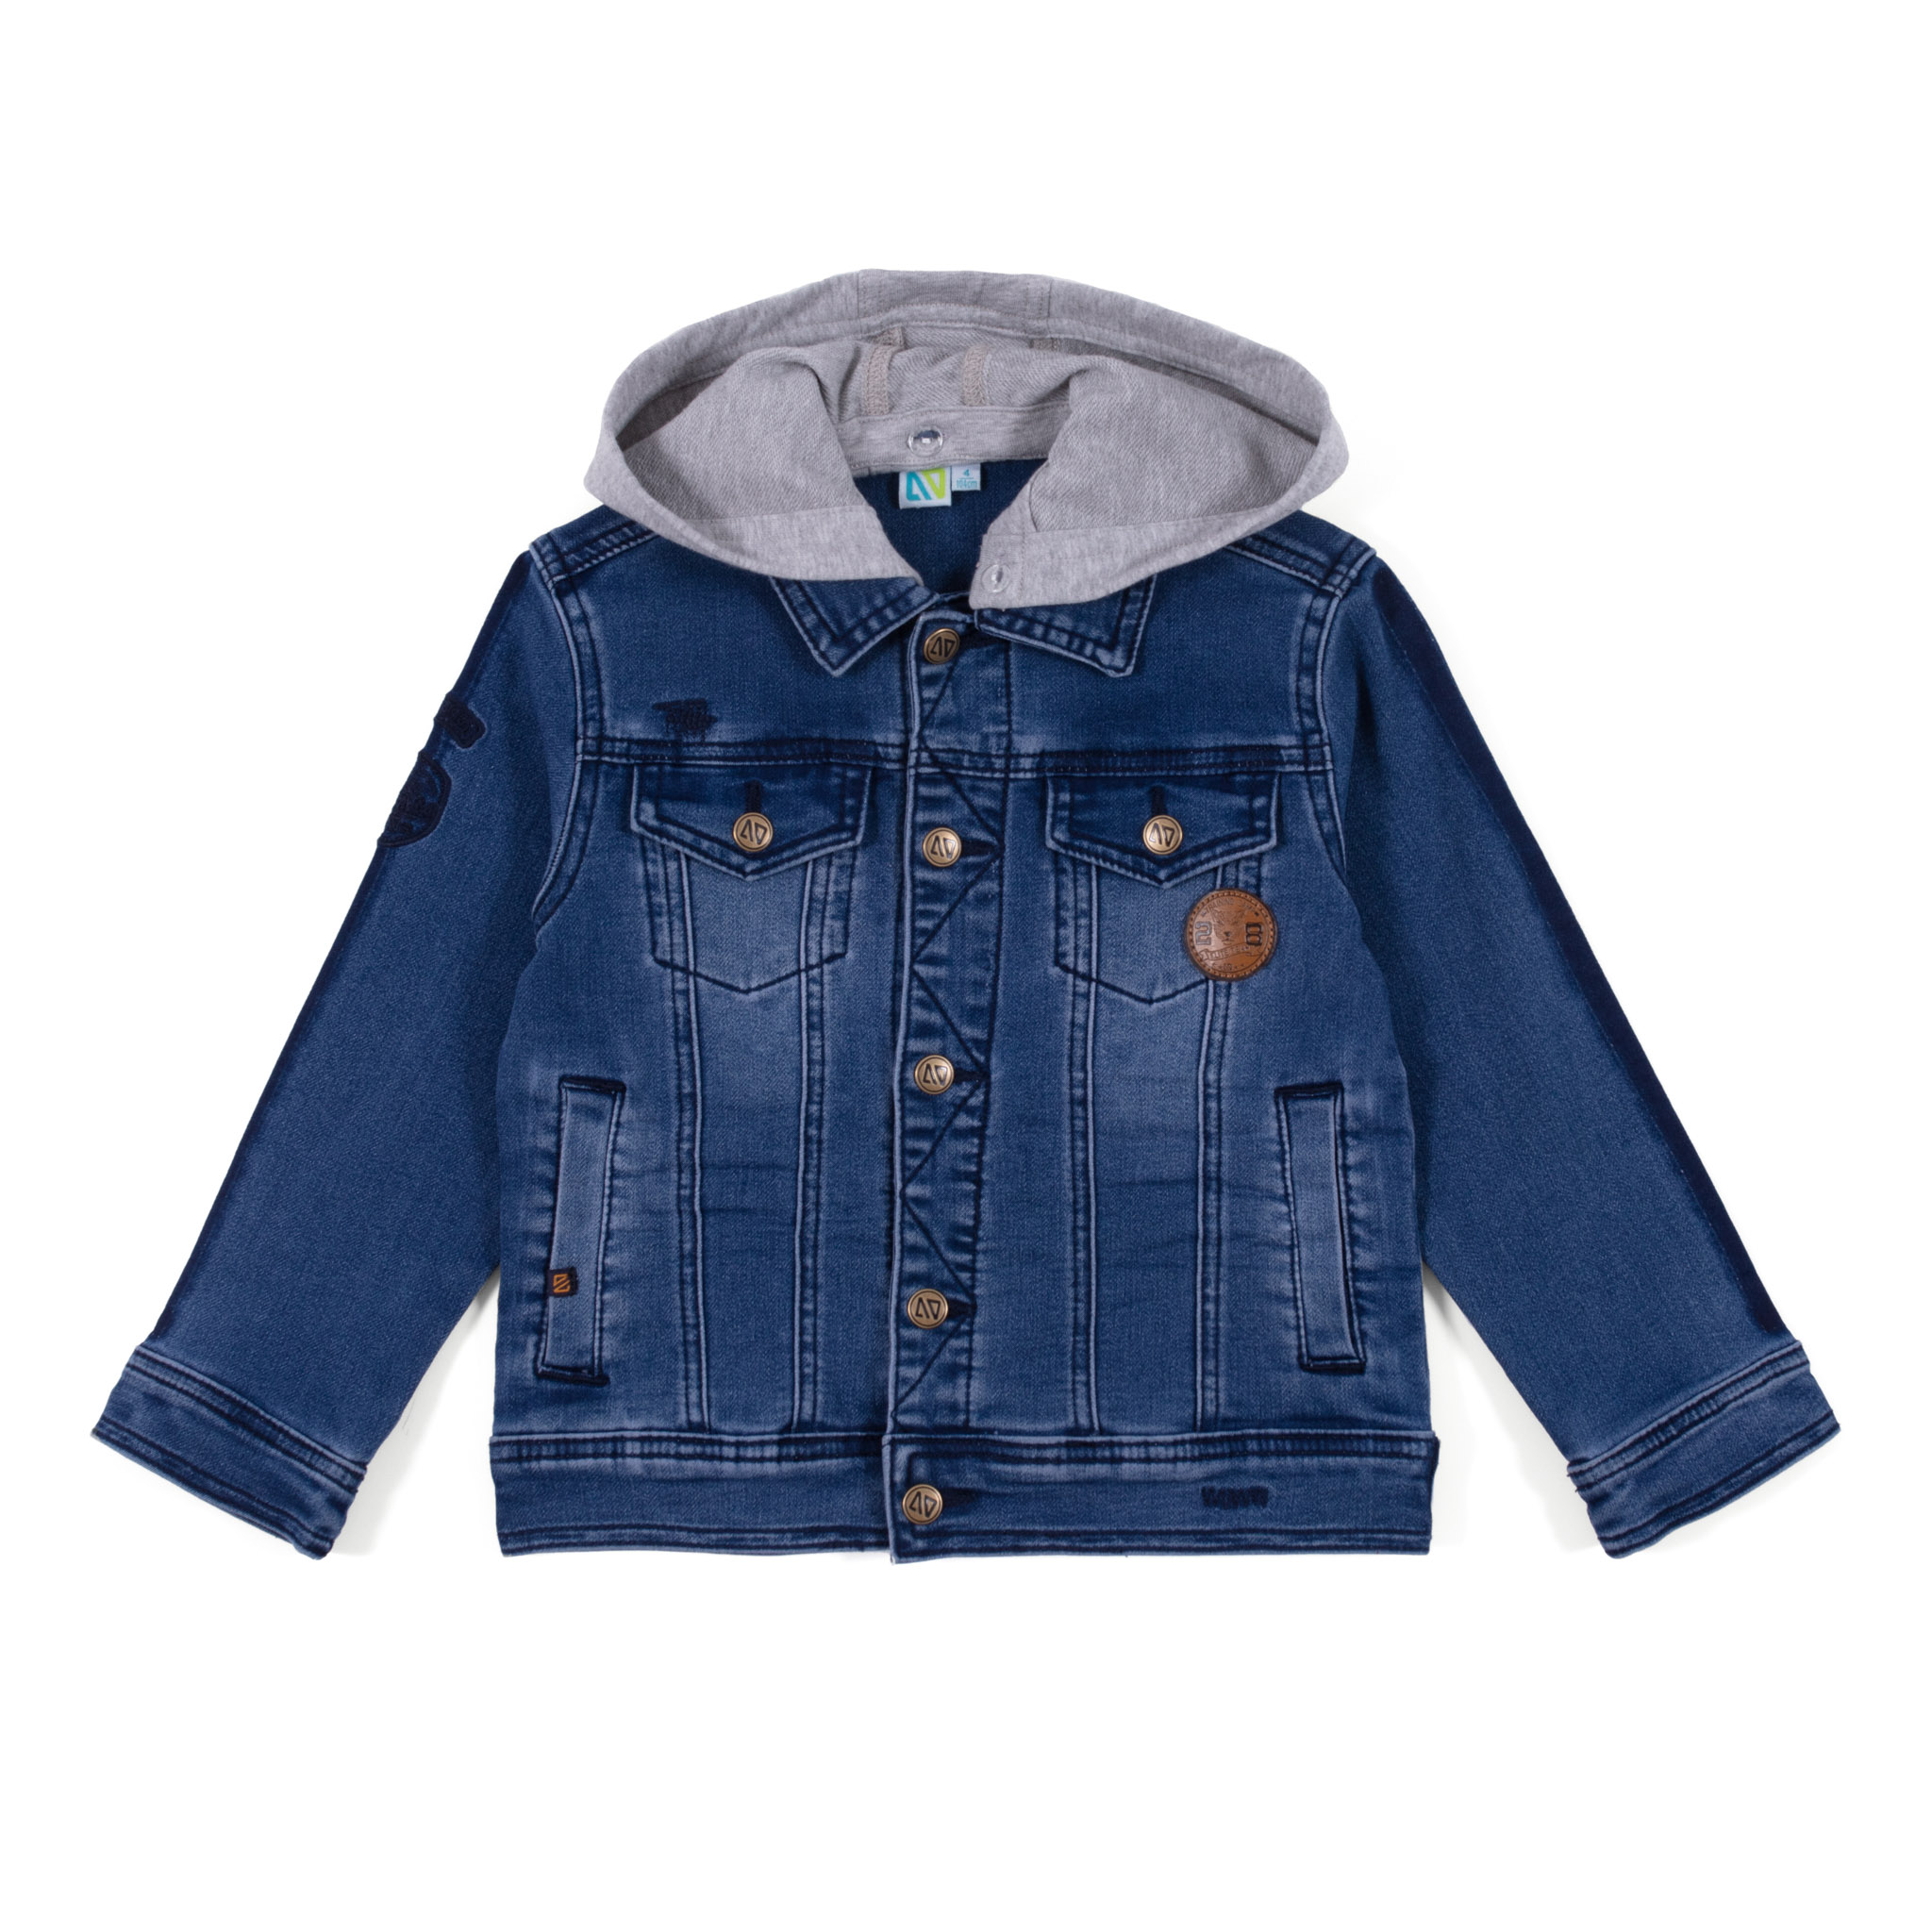 Jeans jacket - Denim Blue - Boys